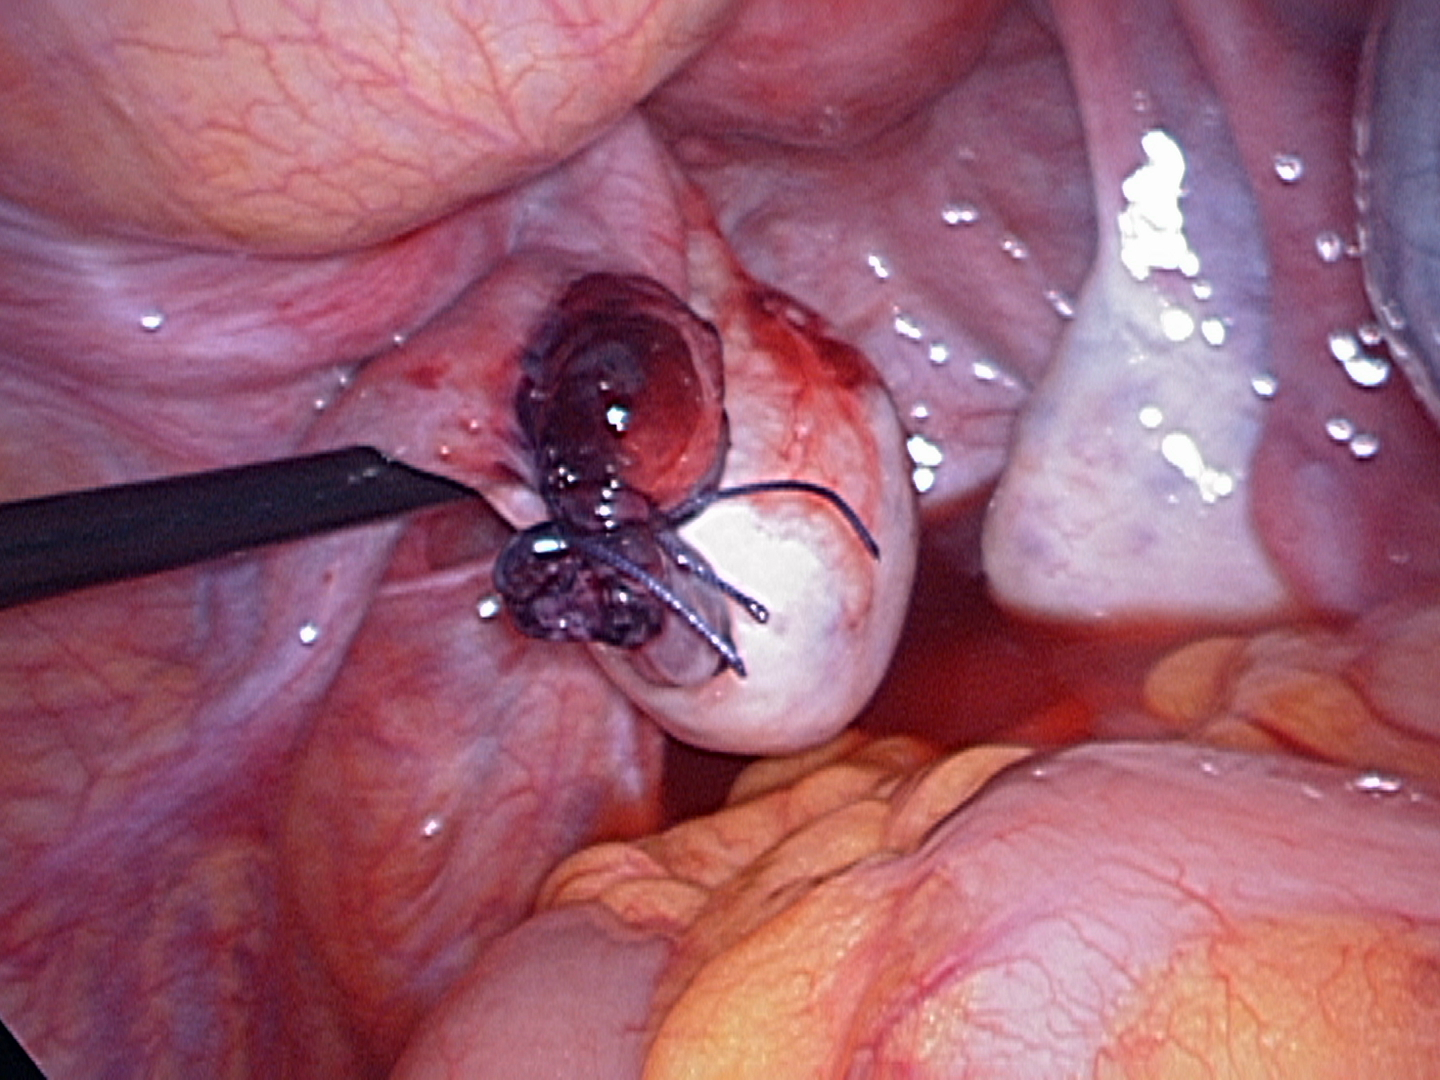 ovary after removing torted tube